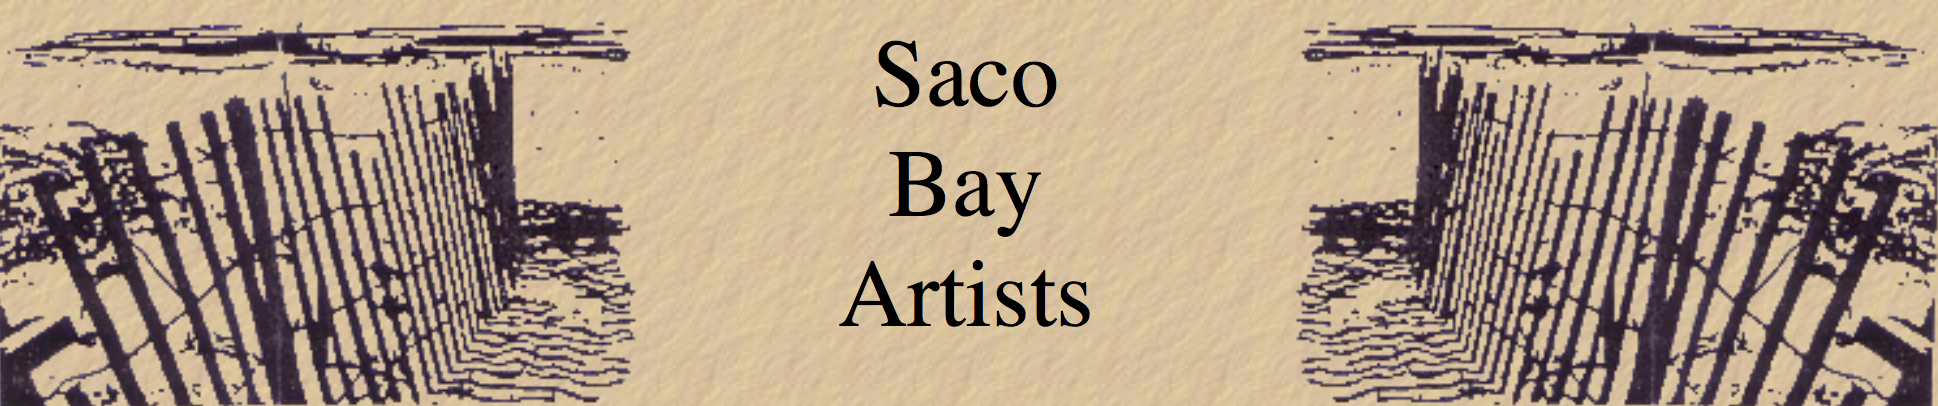 Saco Bay Artists